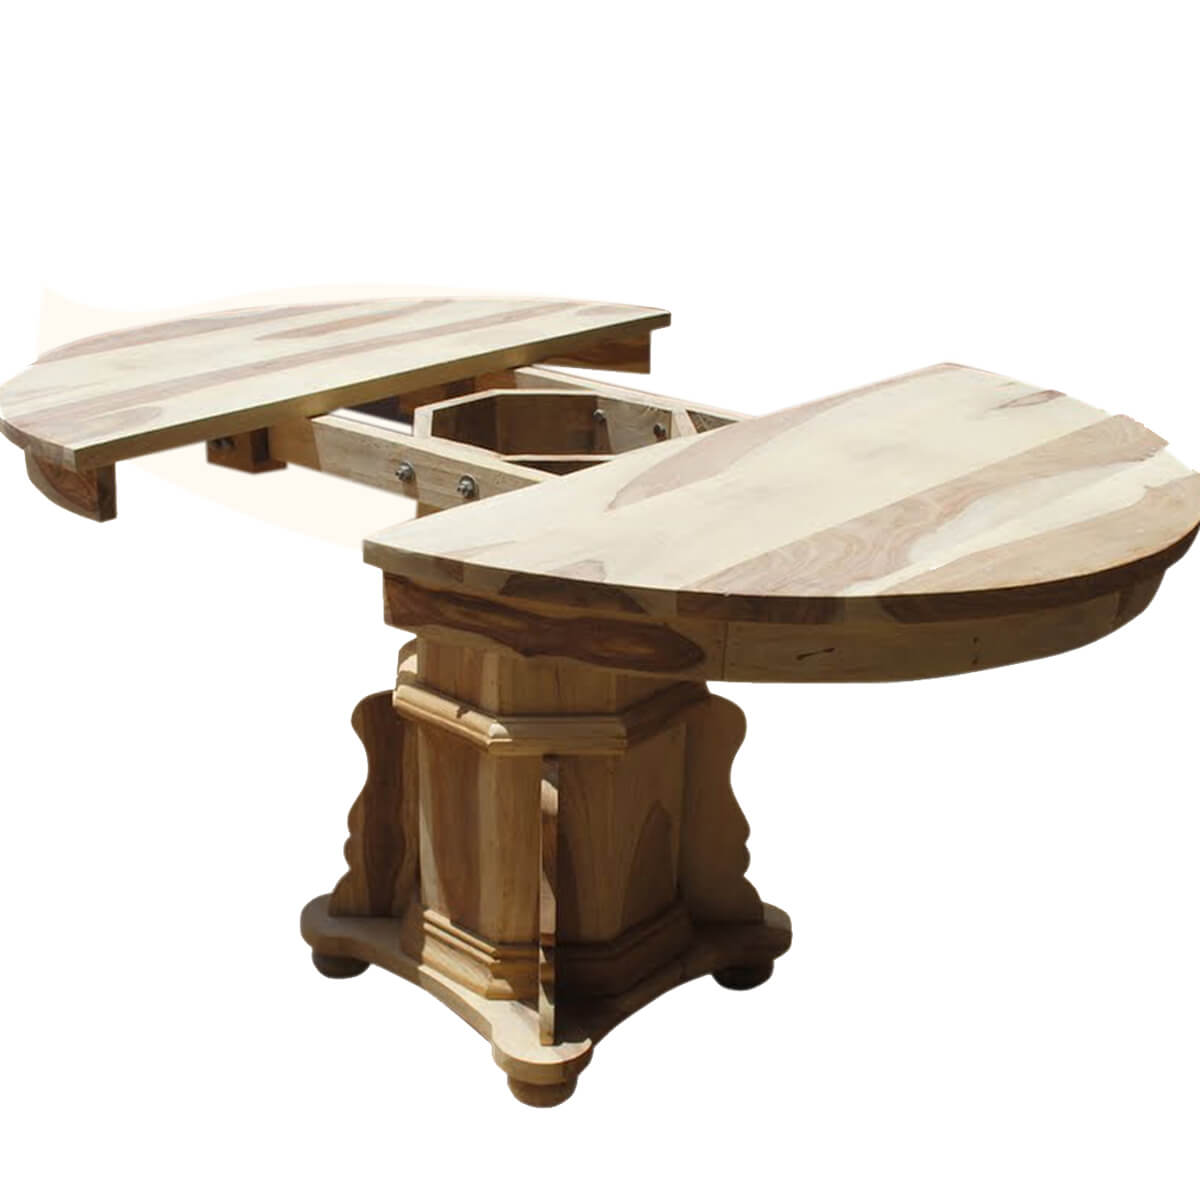 Dallas ranch solid wood pedestal round dining table w for Pedestal dining table